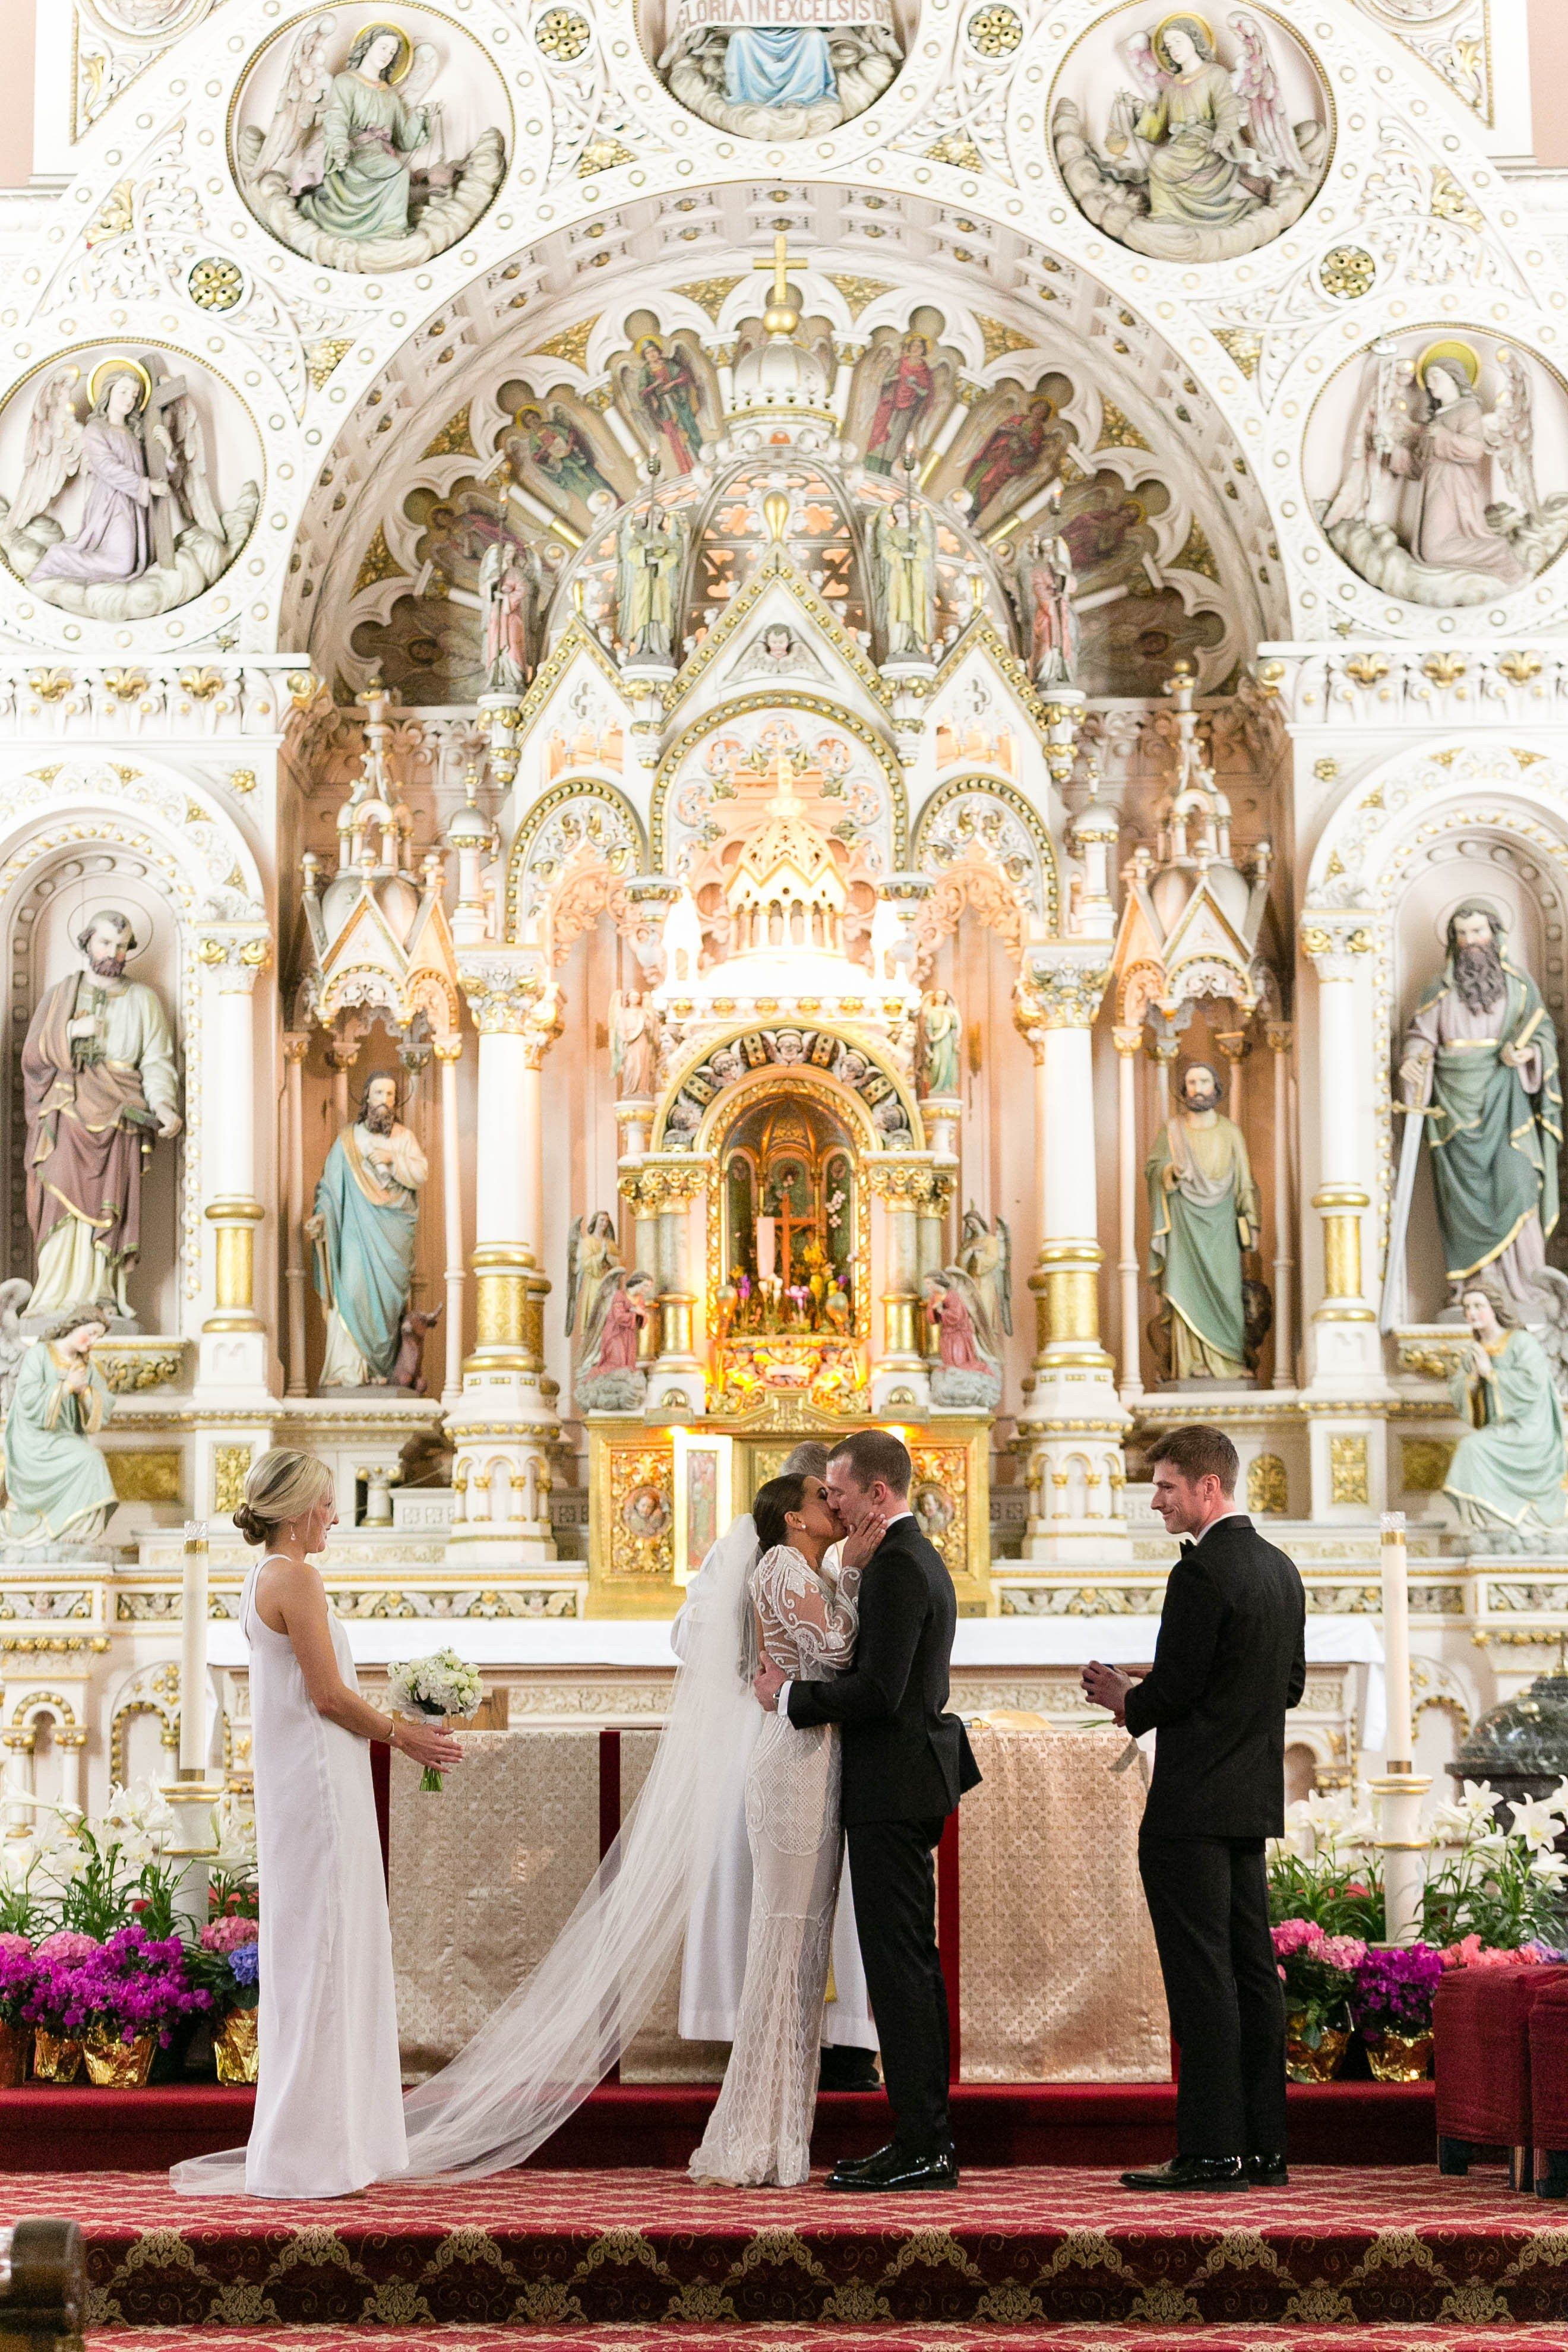 6 Essential Details About Getting Married in a Catholic